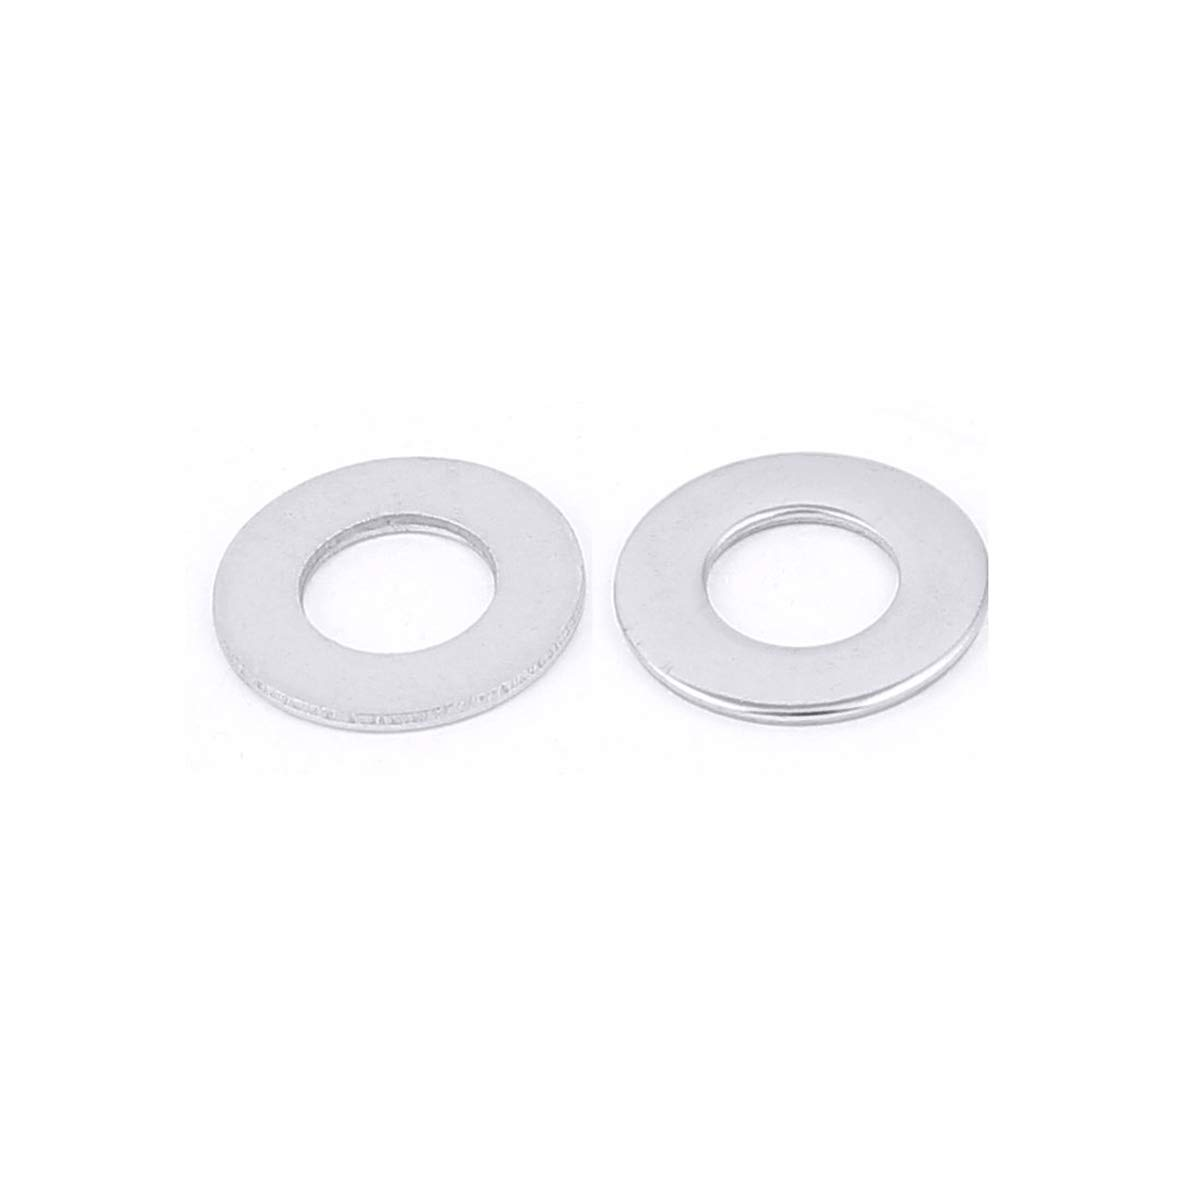 100pcs Stainless Steel M10 Stainless Flat Finish Washer 3//4 OD 18-8 M10 ZLYY 304